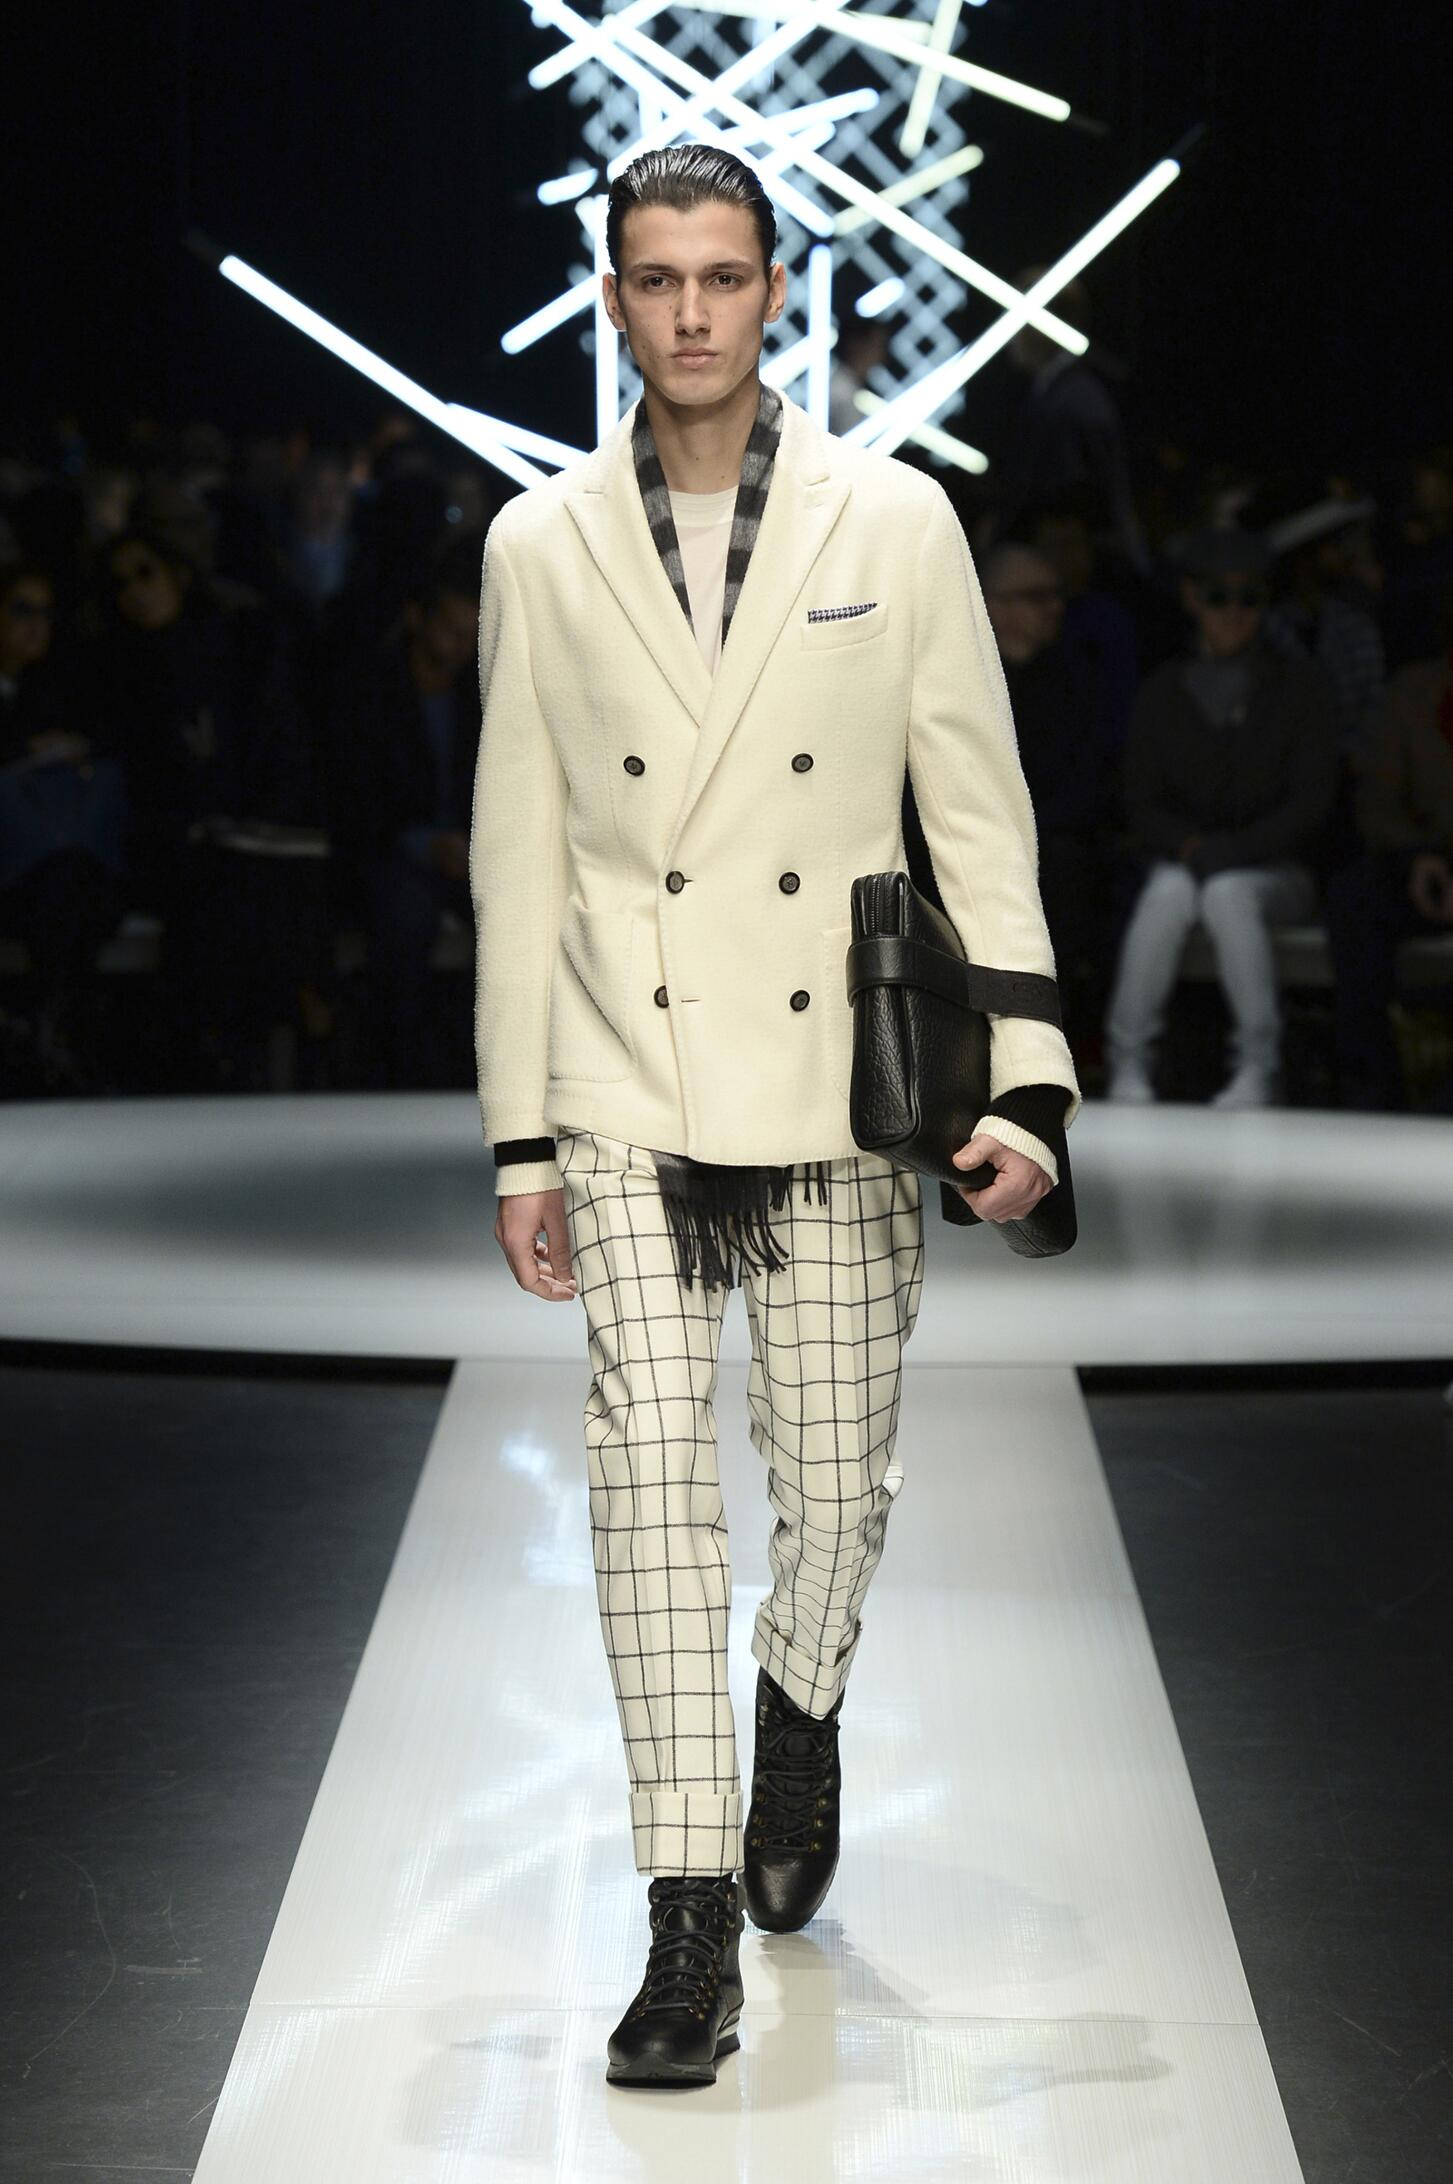 Fashion Man Model Canali Collection Catwalk